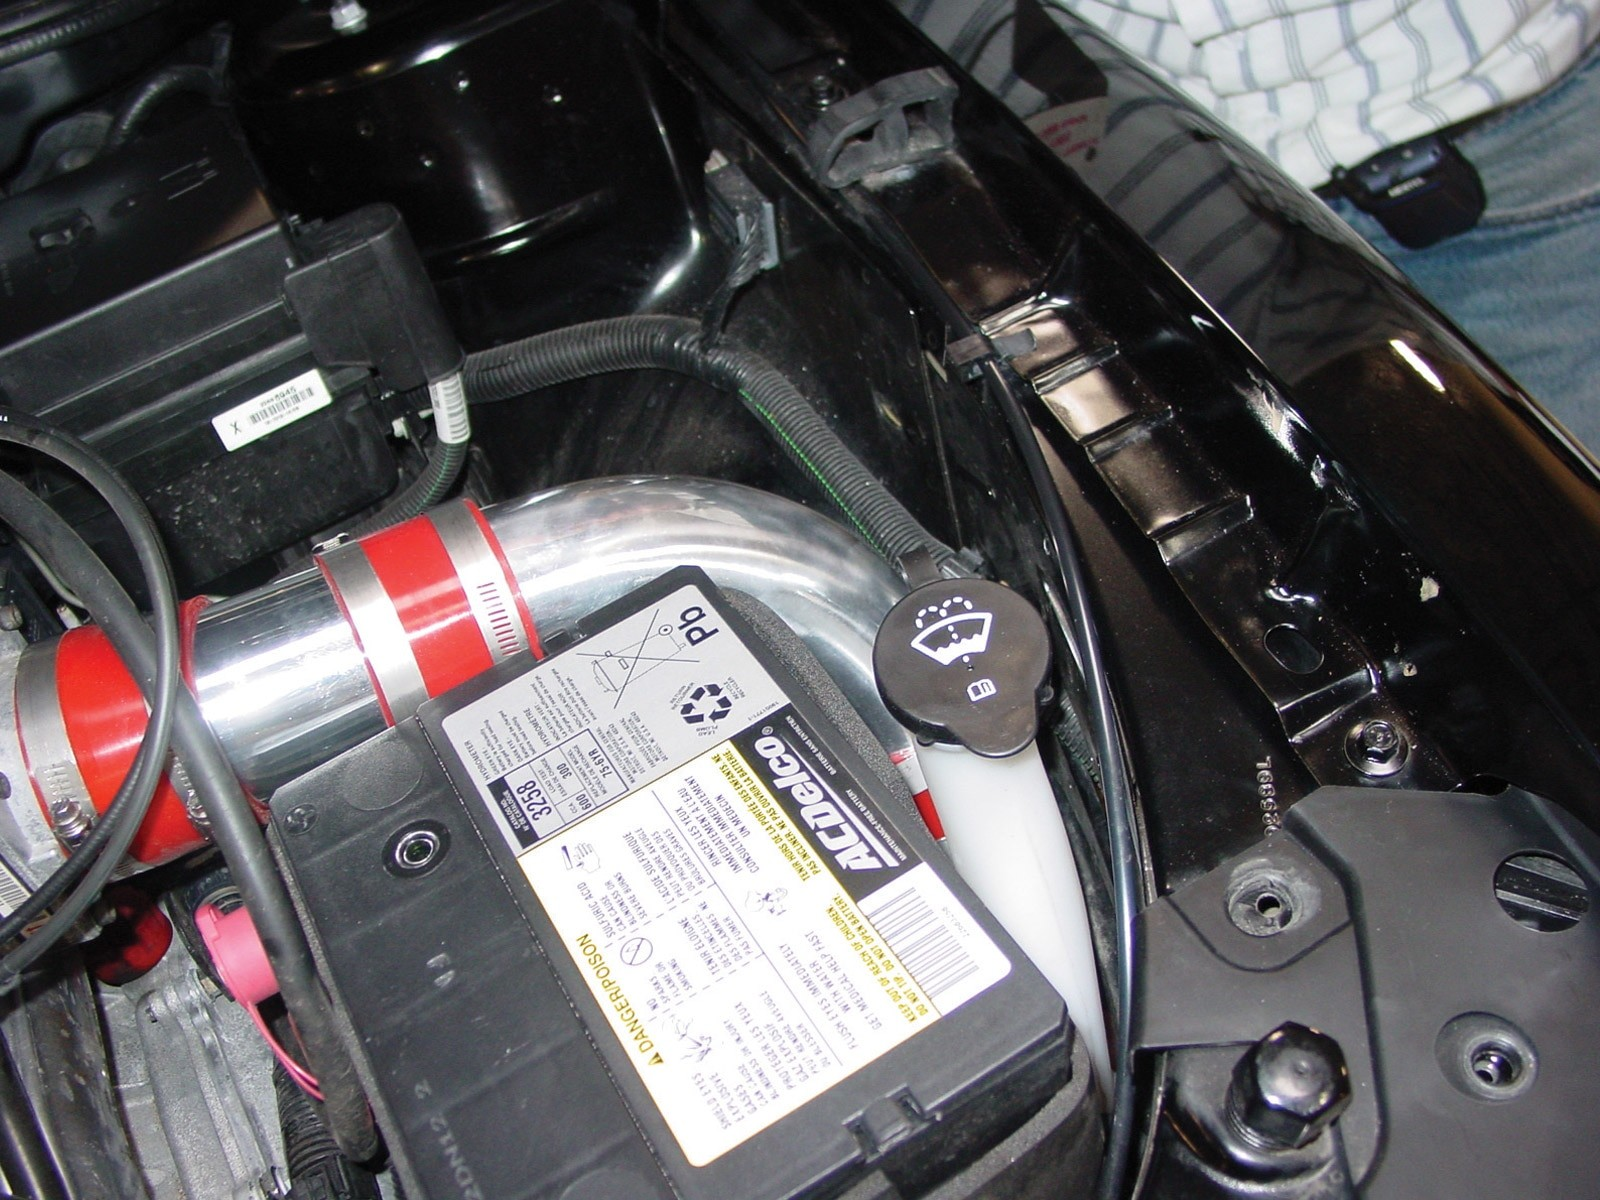 2000 Pontiac Grand Am Gt Engine Diagram Bolt S Power Mods Hot Rod Yield 20hp In Our 02